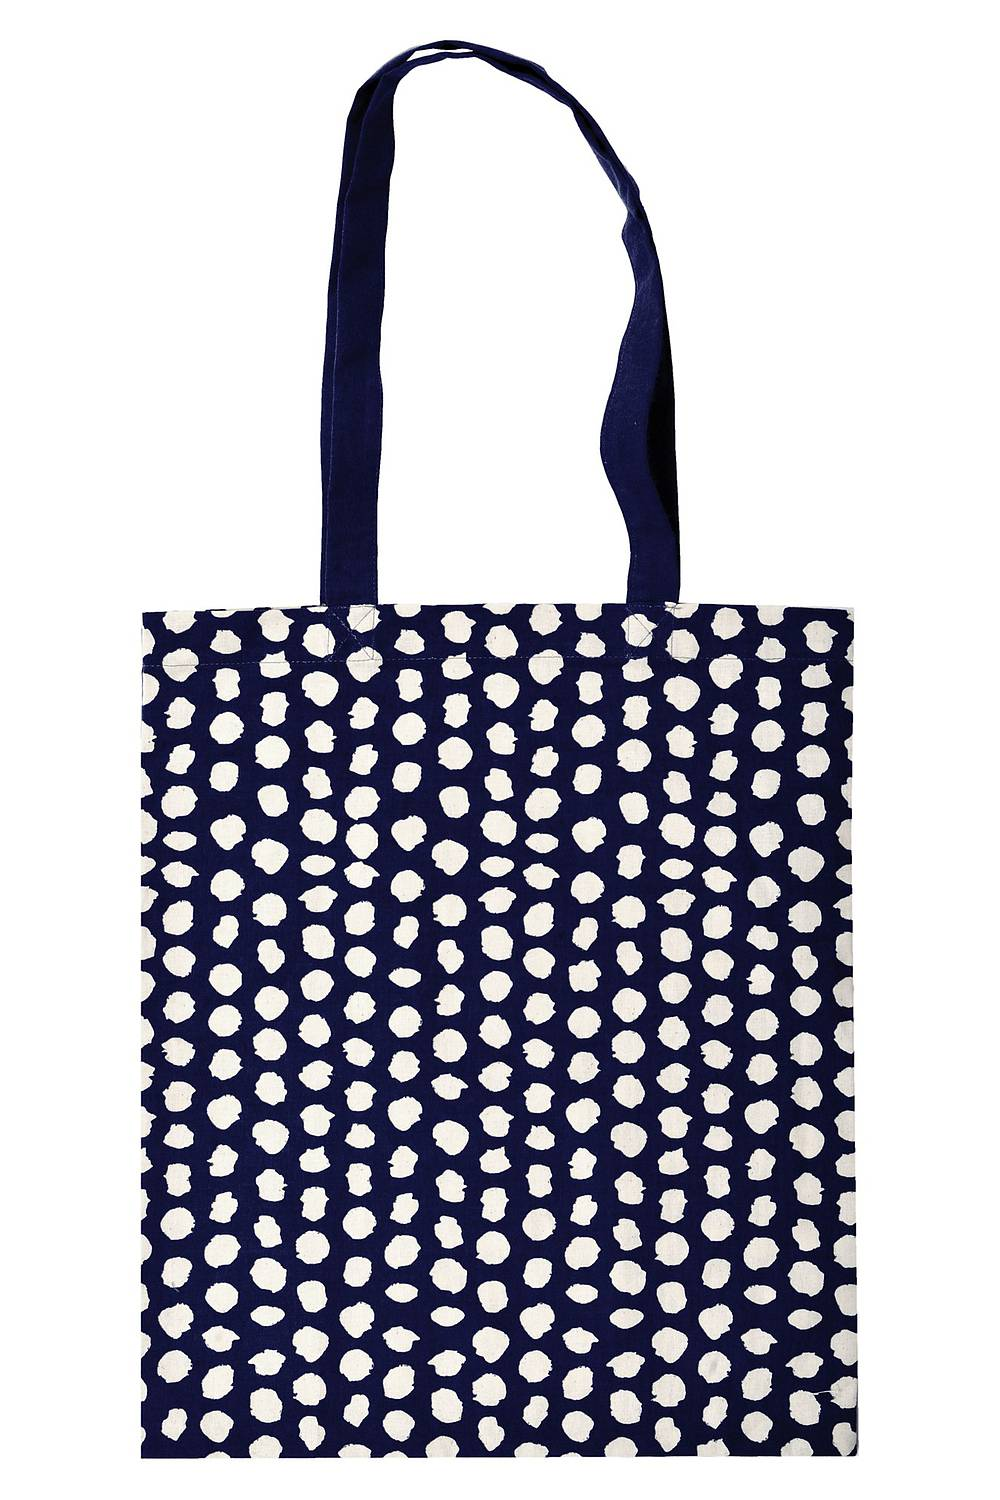 Cloth bag DOTS